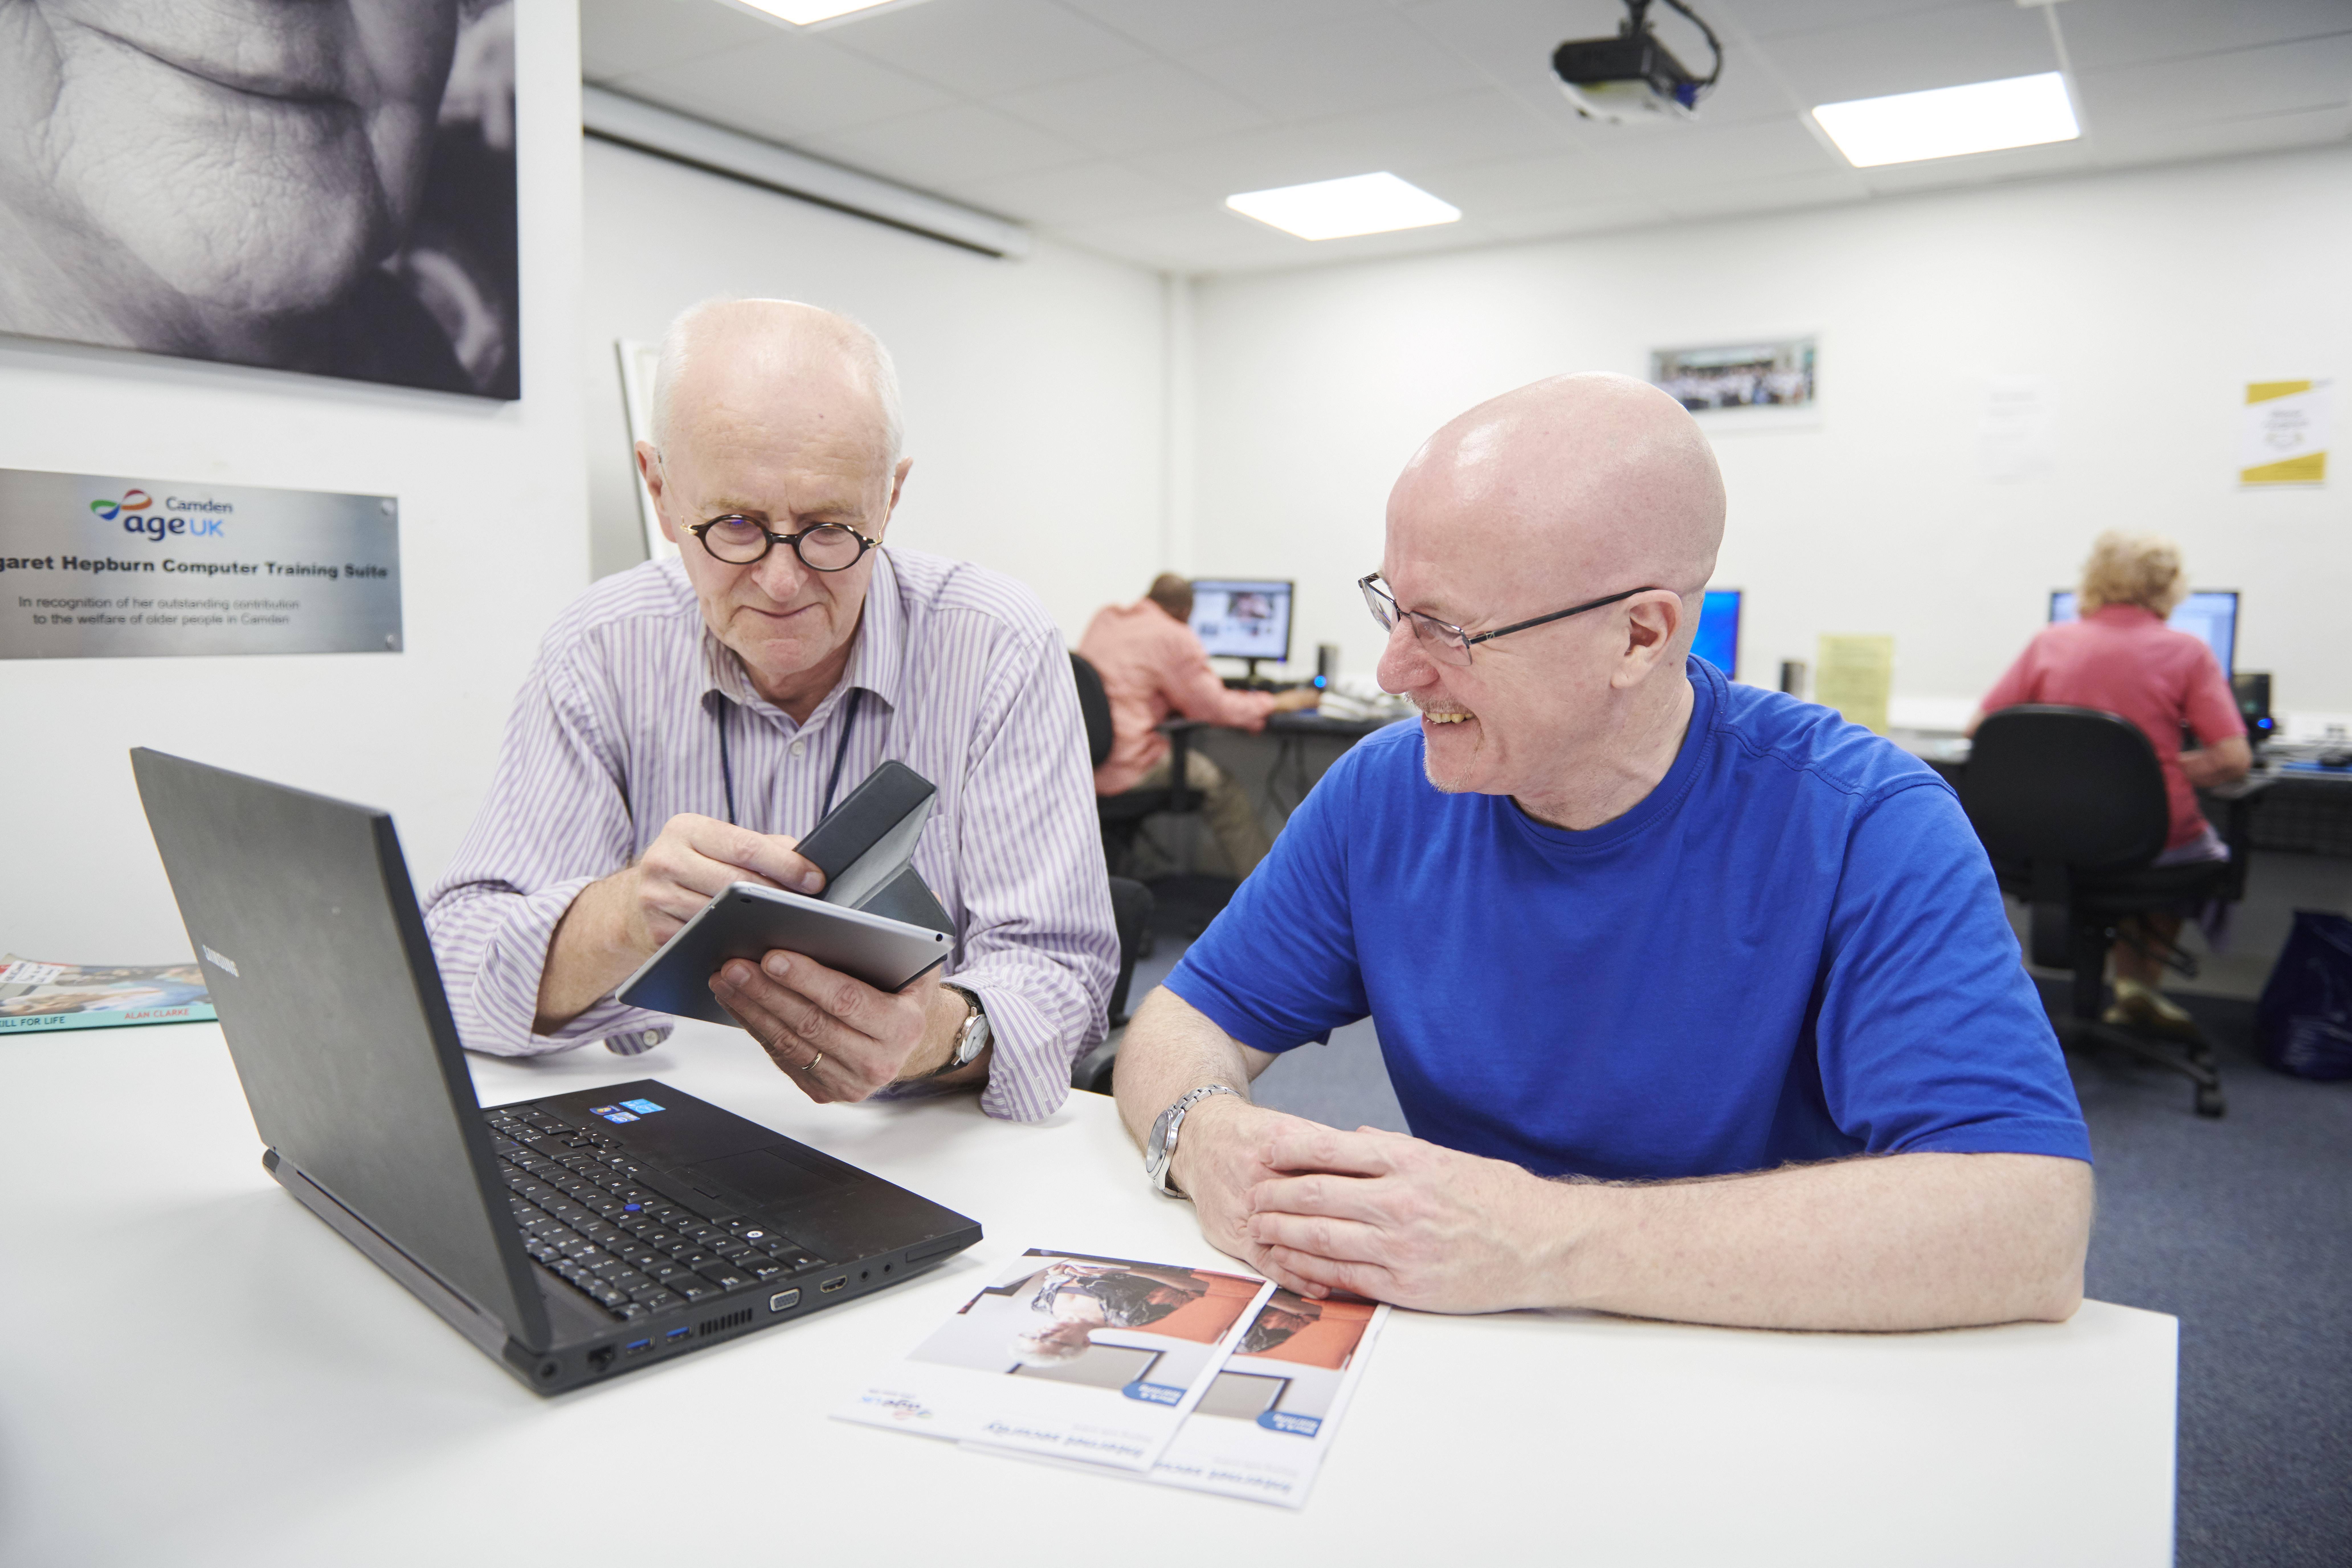 IT training and digital inclusion